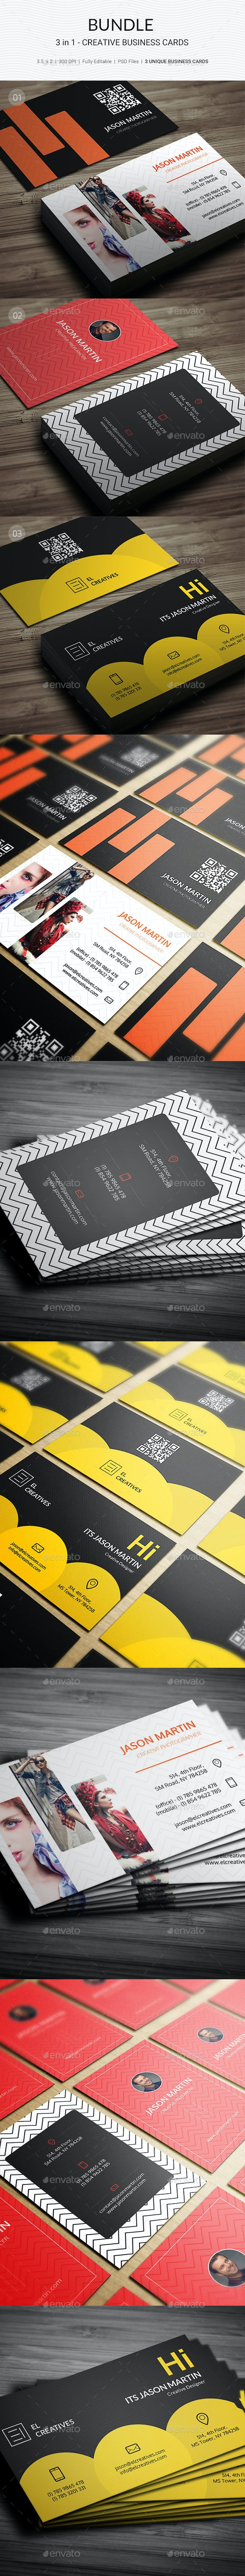 Bundle - 3 in 1 - Creative Business Cards - 177 - Creative Business Cards